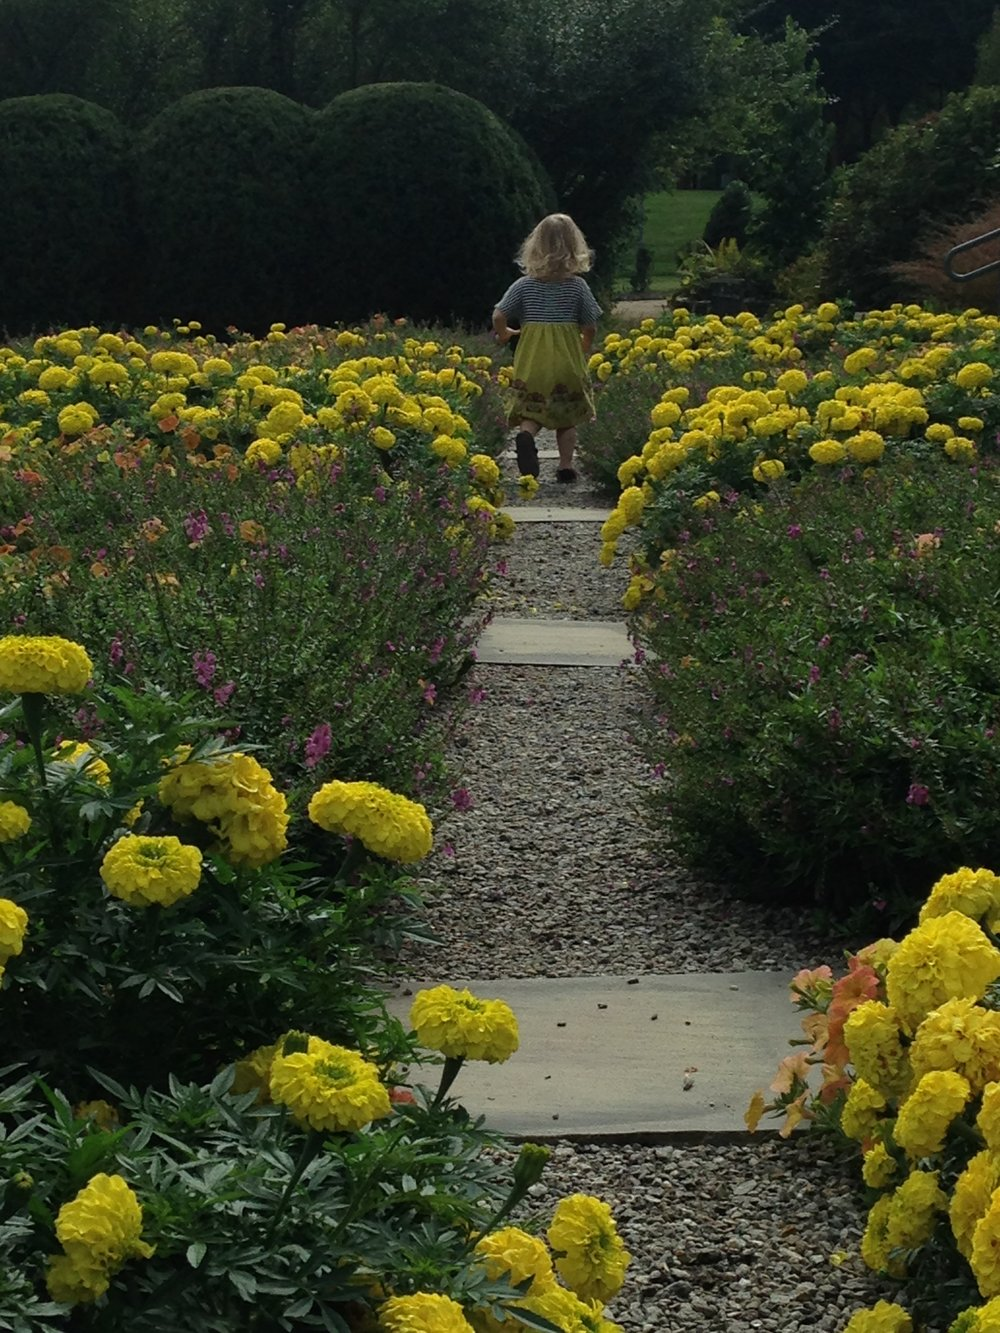 The prettiest little girl I know, my granddaughter, running through the quilt garden at the Arboretum.